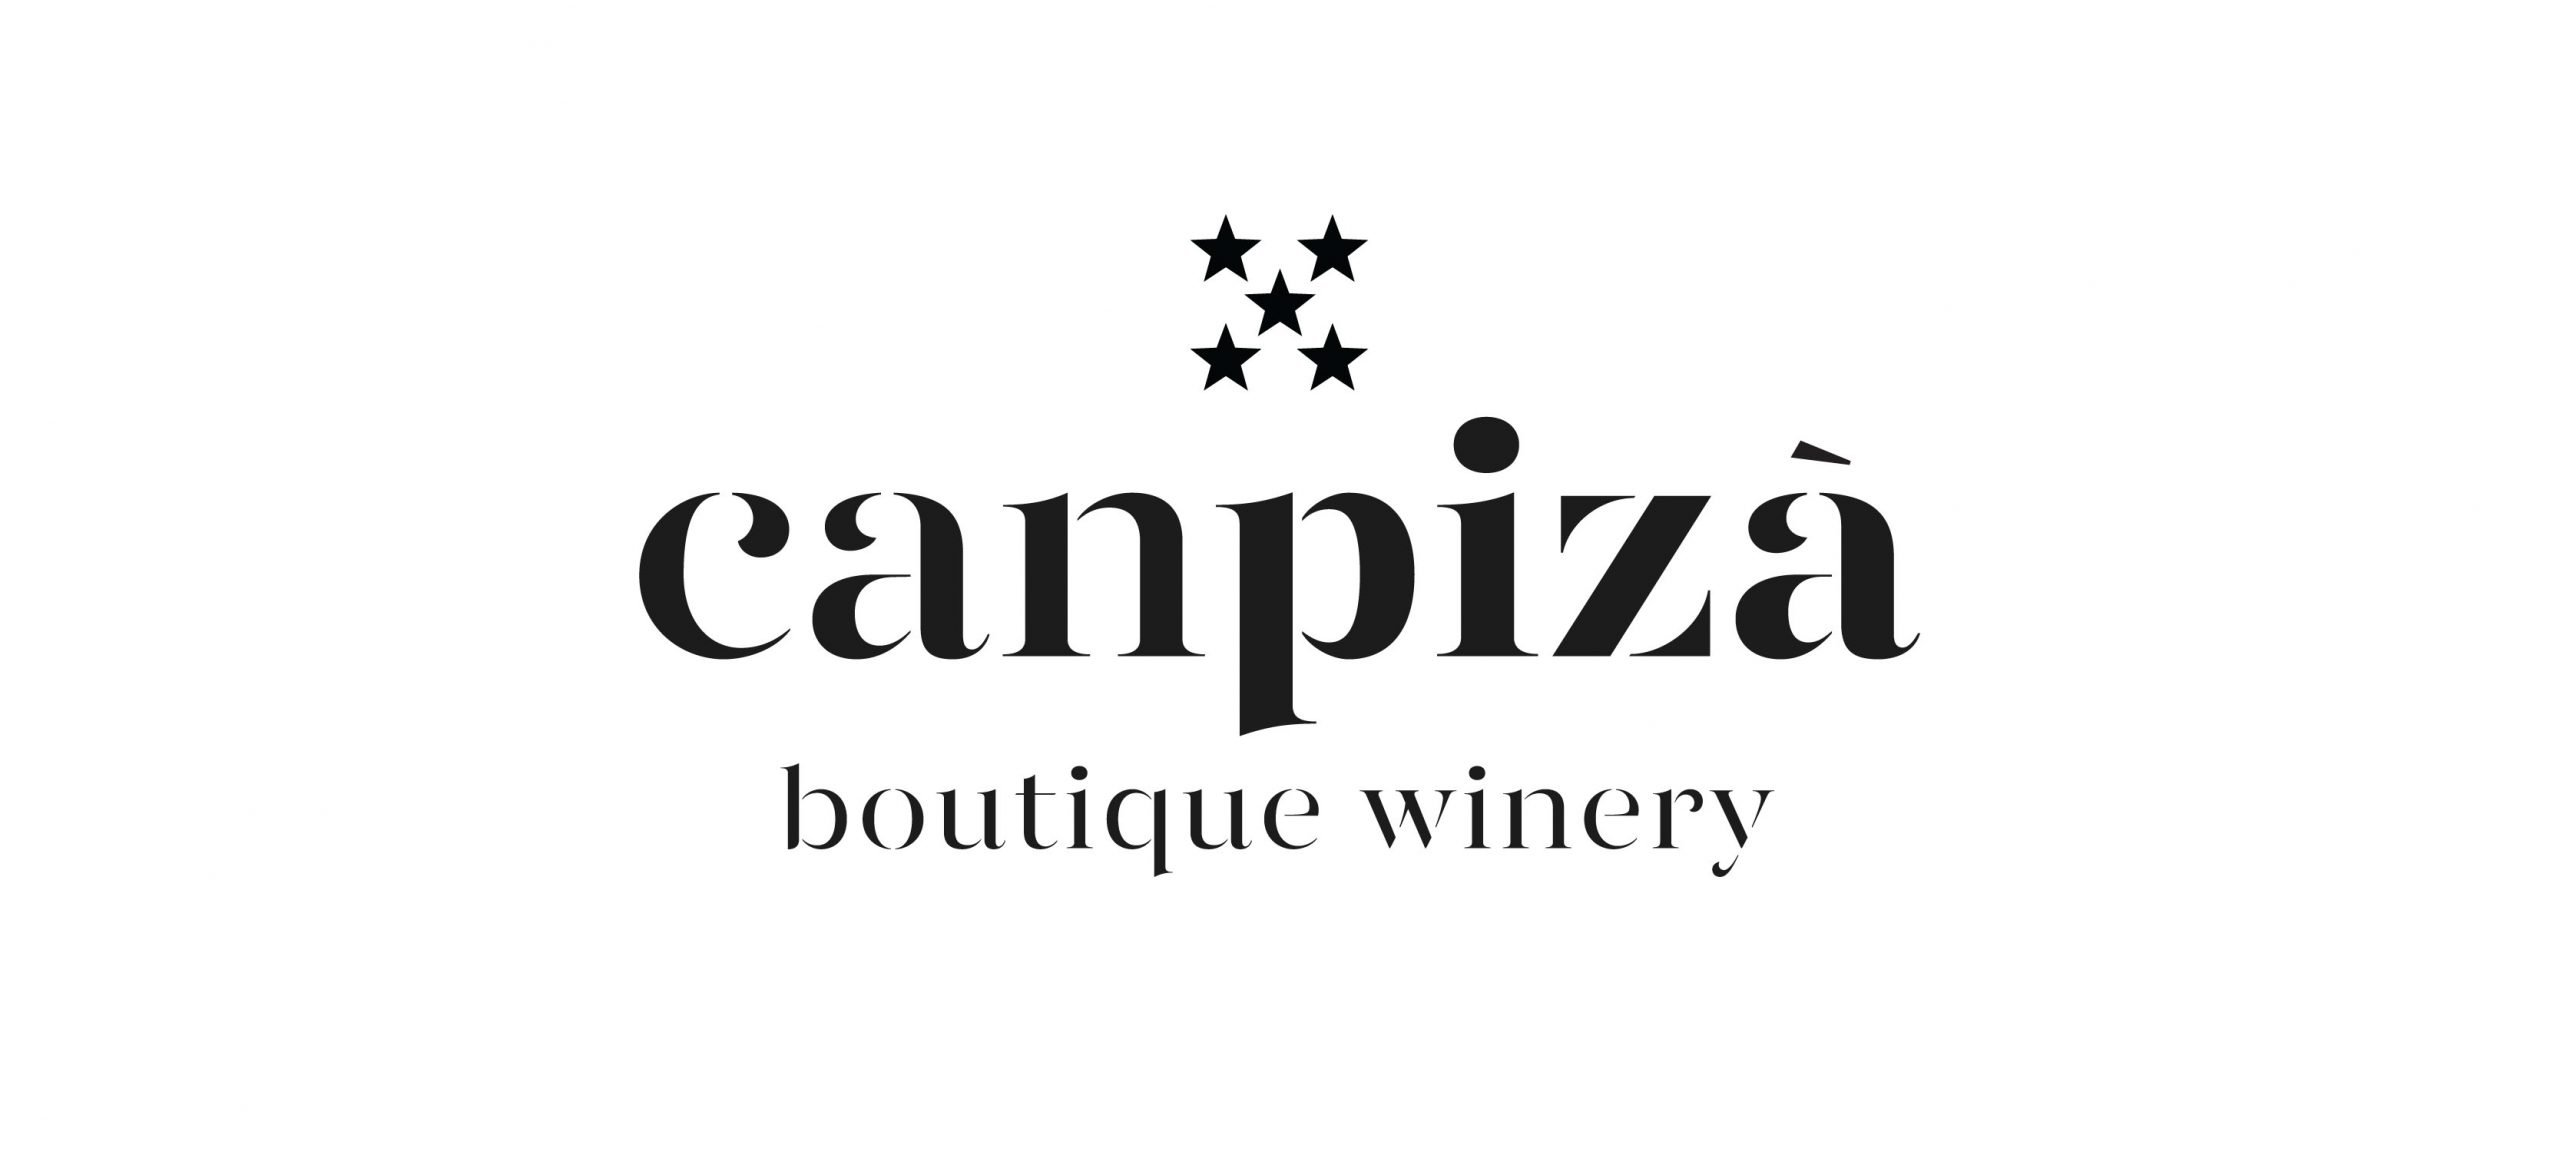 Can Piza Boutique Winery